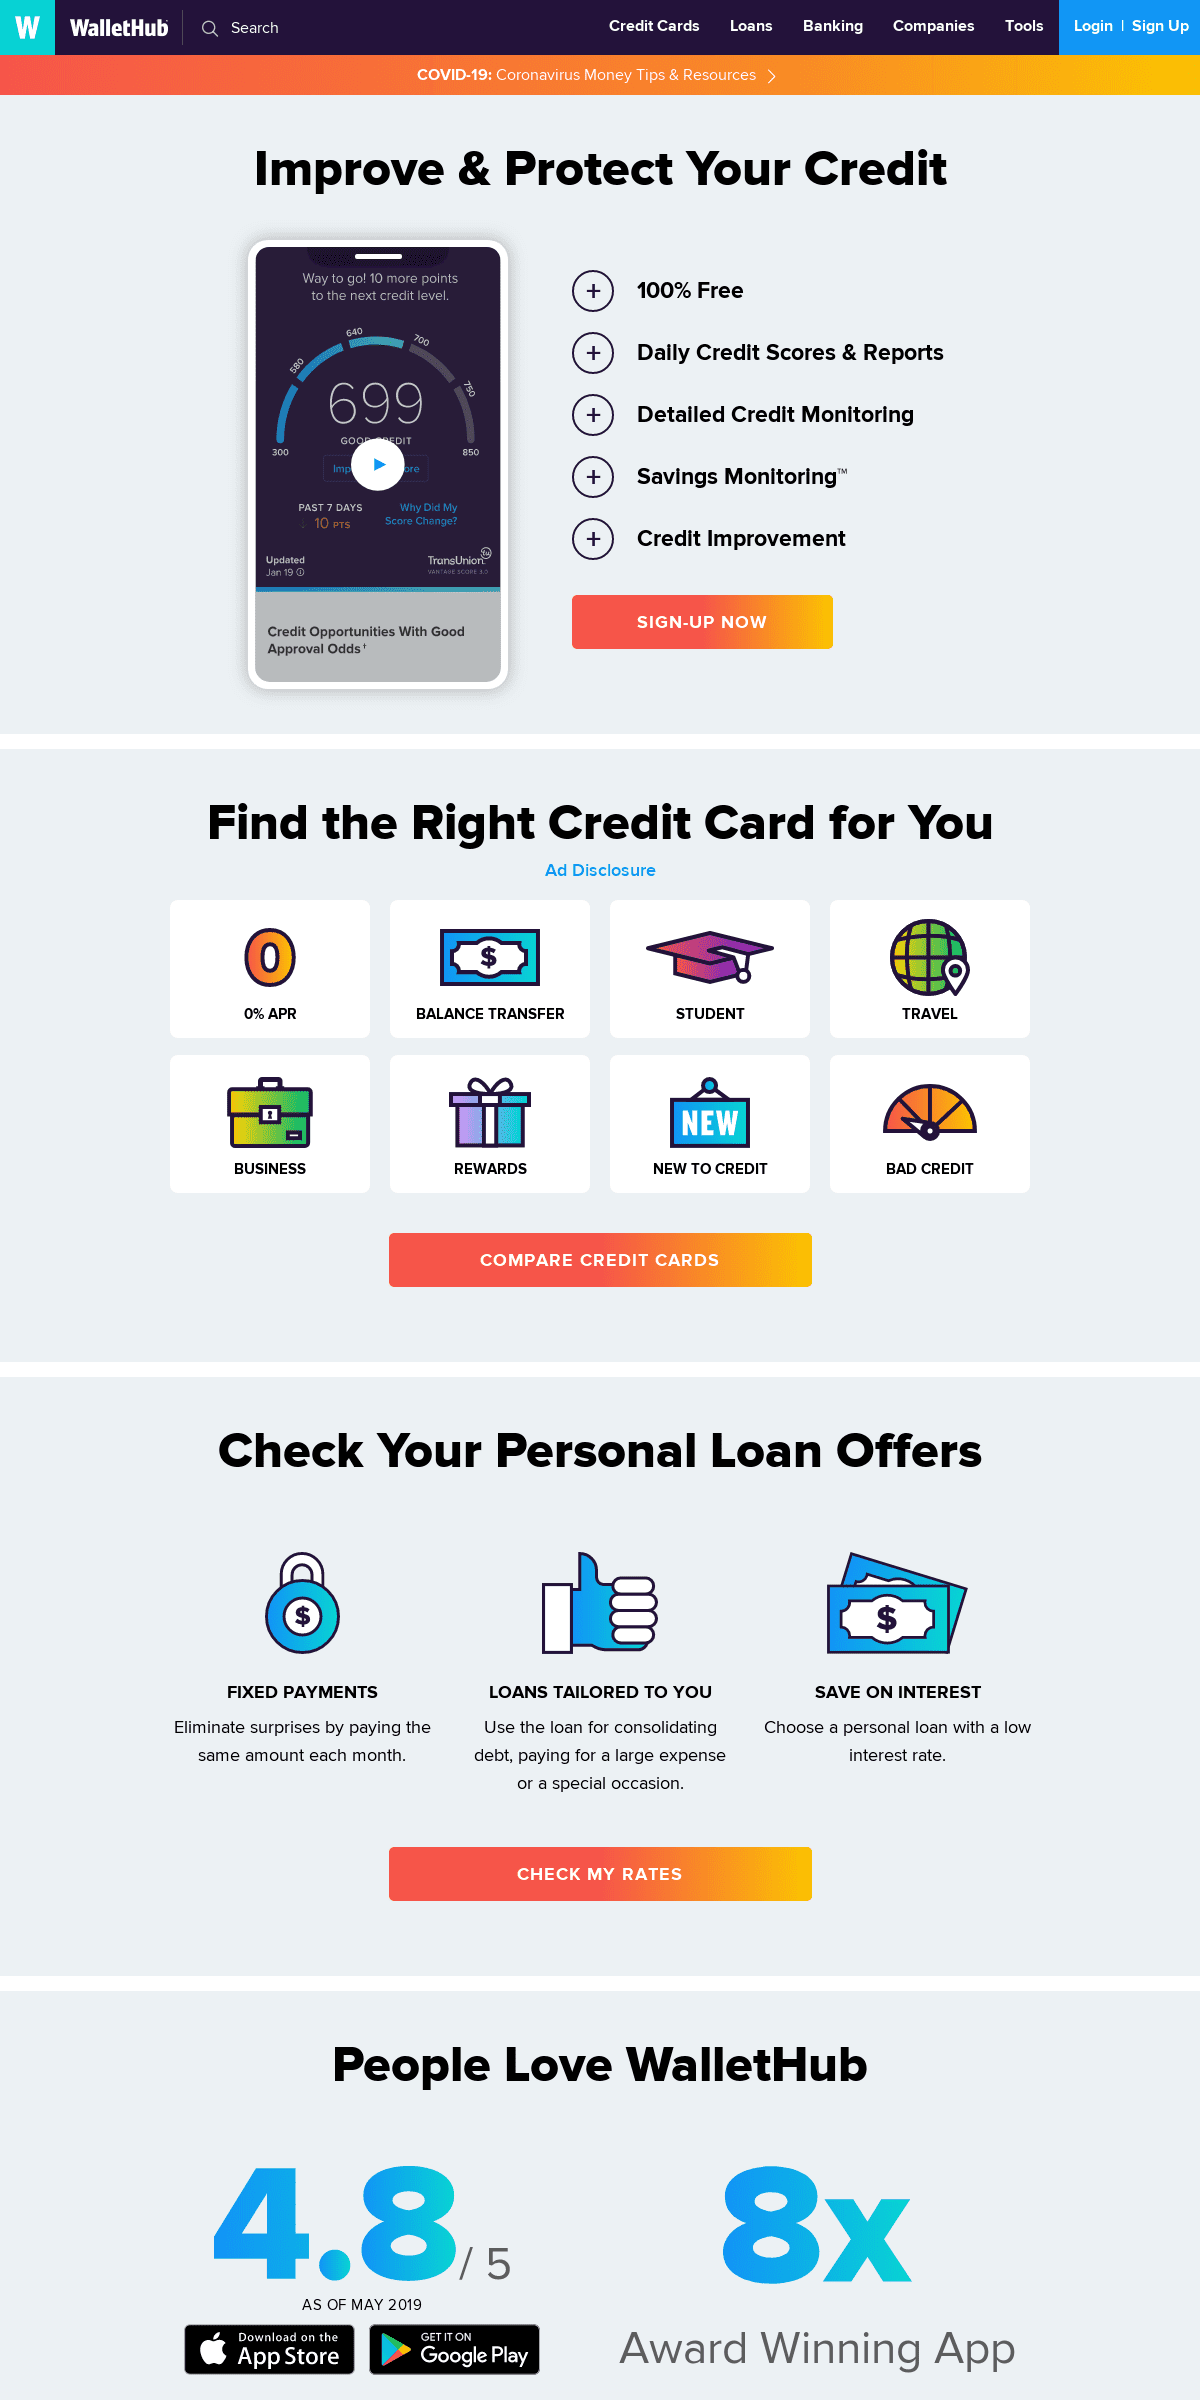 ArchiveBay.com - wallethub.com - WalletHub- Free Credit Scores, Reports & Credit Improvement